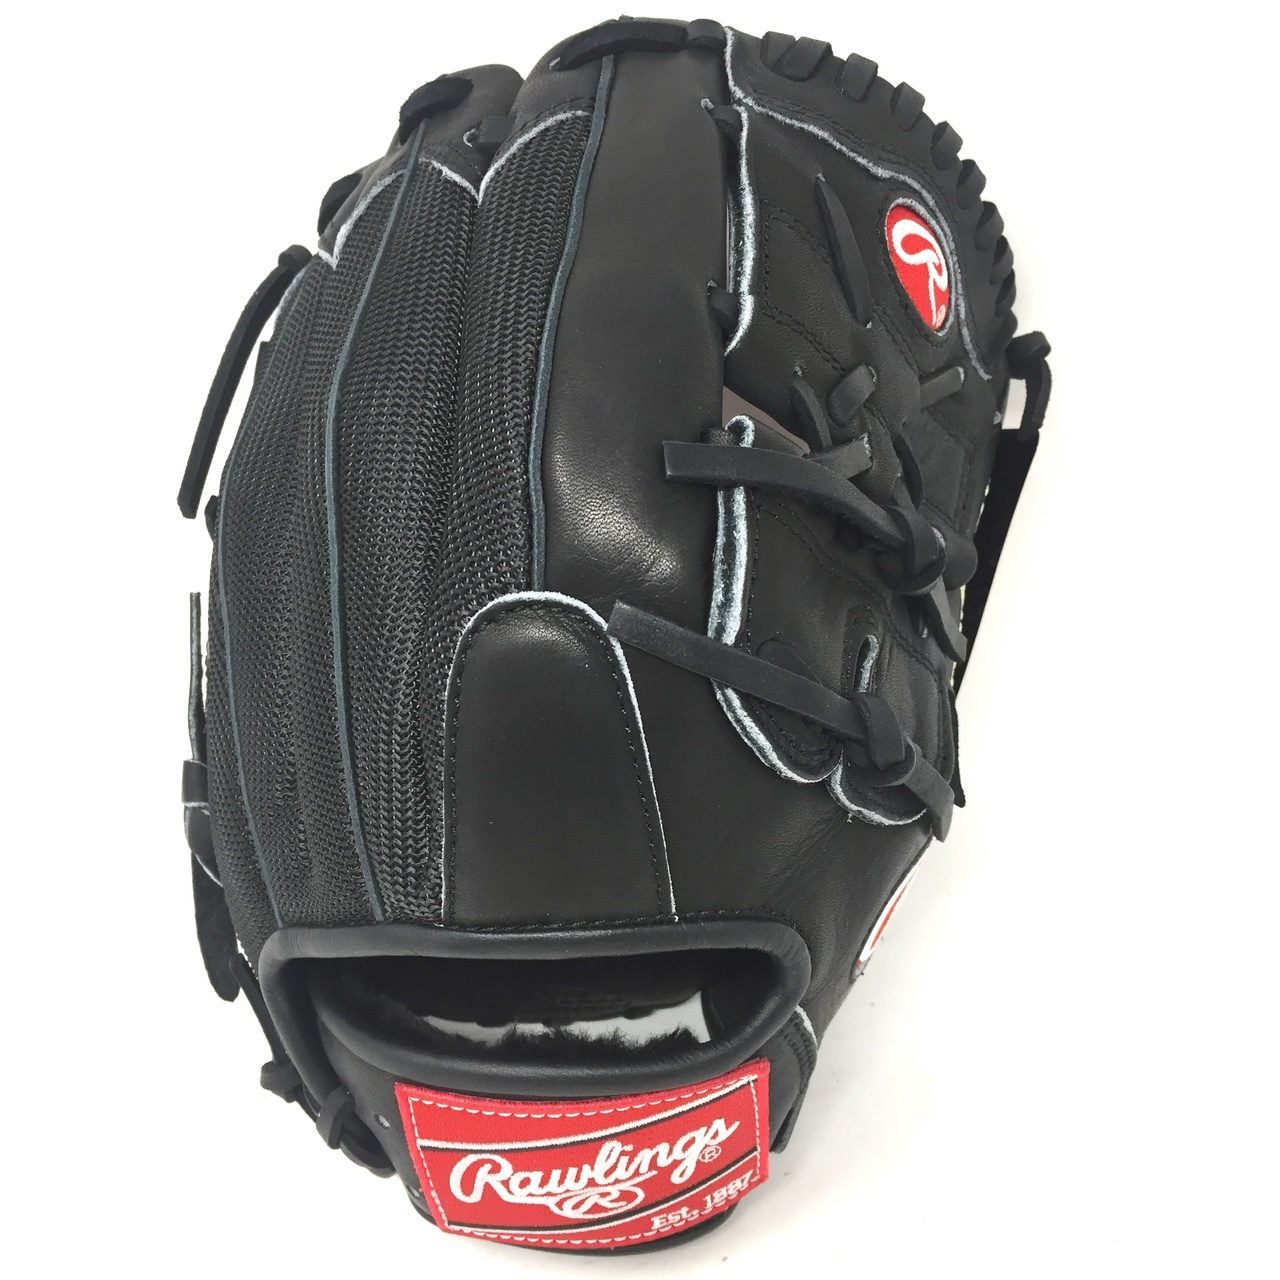 rawlings-heart-of-the-hide-11-5-inch-pro-mesh-baseball-glove-right-handed-throw PRO2009M-RightHandThrow Rawlings New Rawlings Heart of the Hide 11.5 inch Pro Mesh Baseball Glove